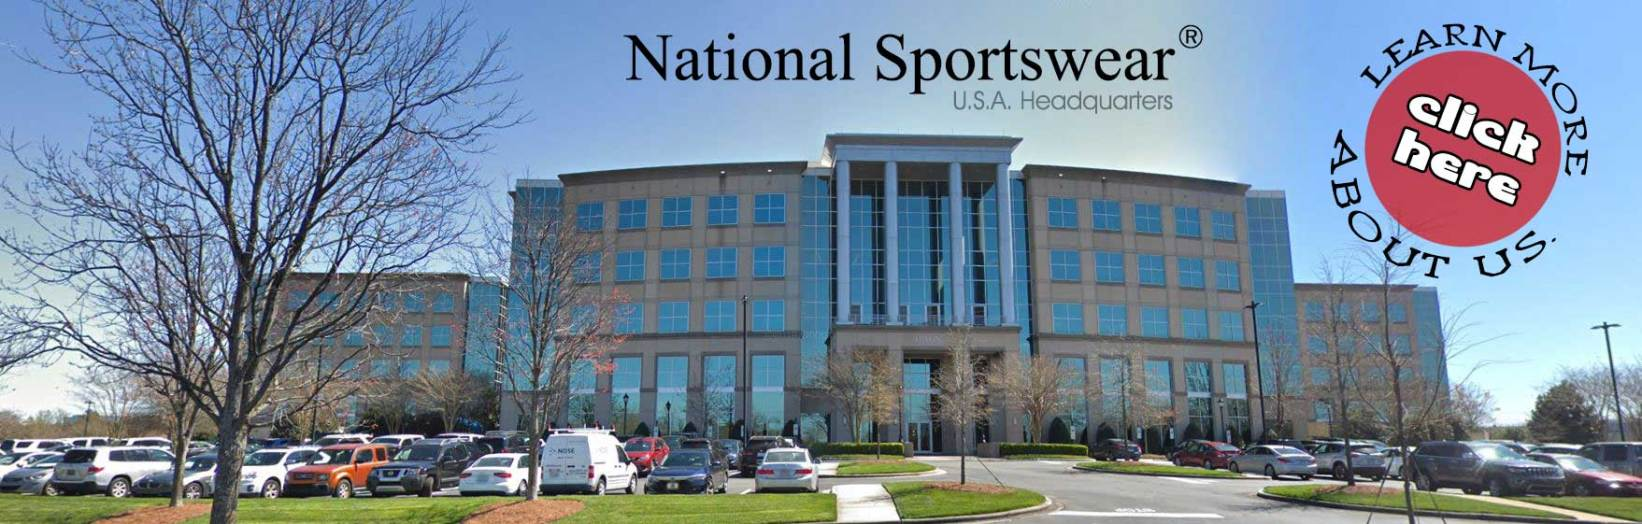 National Sportswear Headquarters